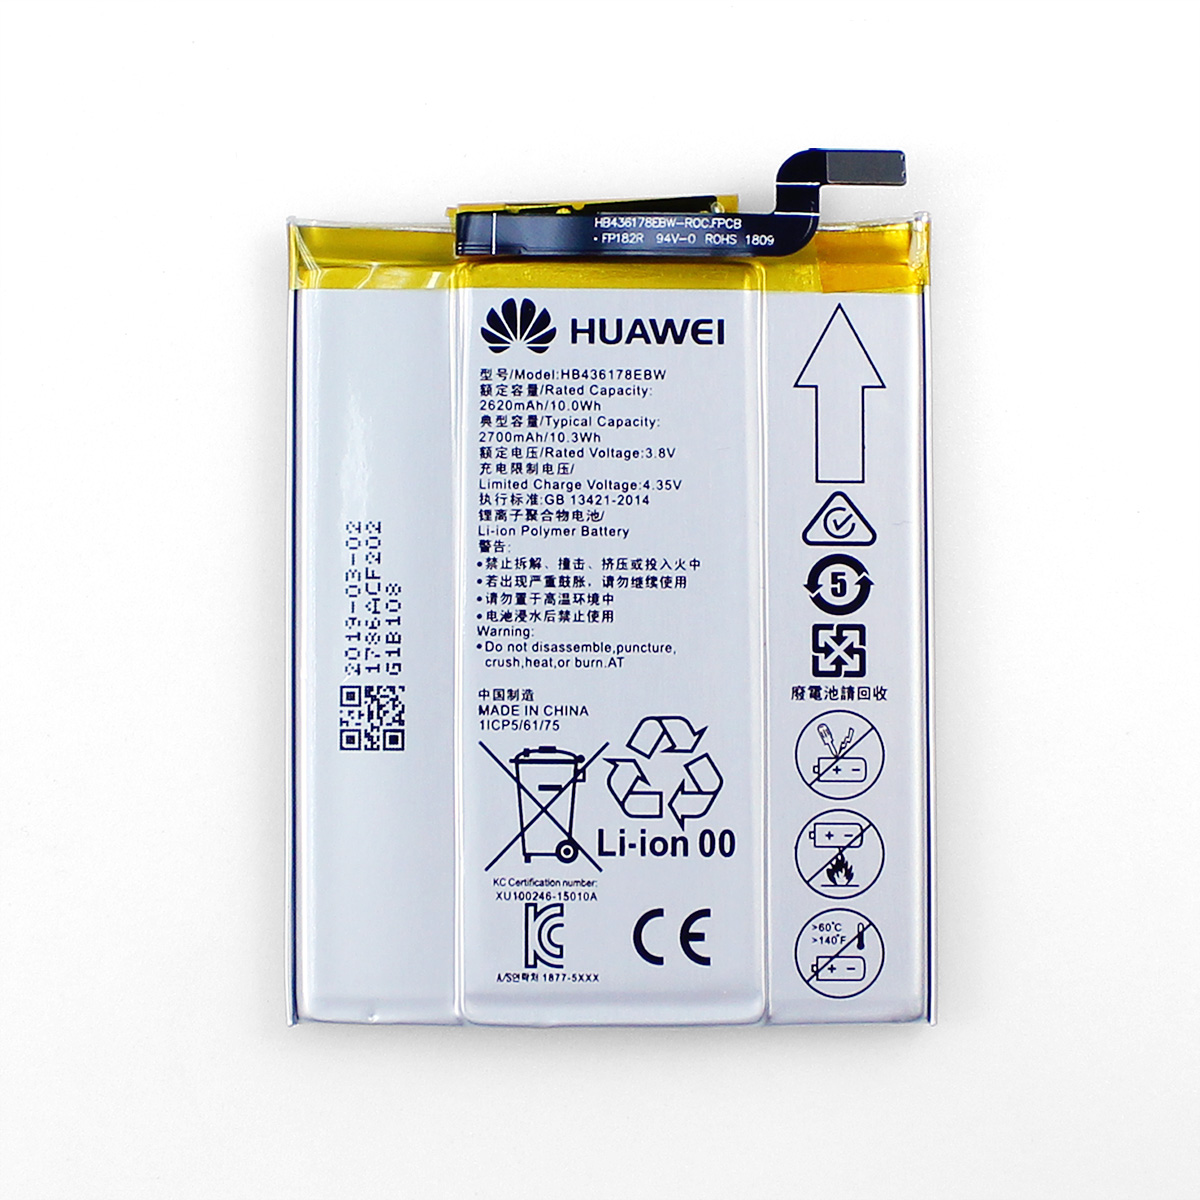 Huawei Mate S CRR-CL00 UL00 HB436178EBW Original Battery Wholesale